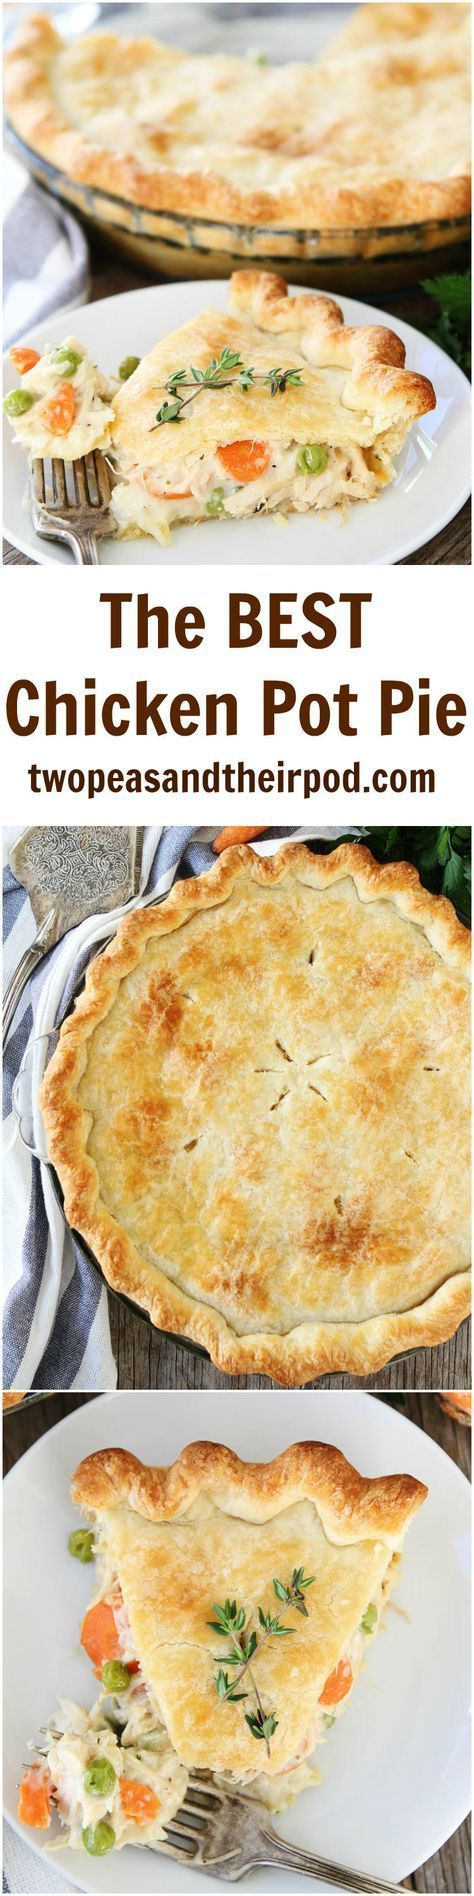 The BEST Chicken Pot Pie recipe  This comforting chicken pot pie is easy to make and it freezes well too! It is a family favorite meal! (Favorite Family Meals)